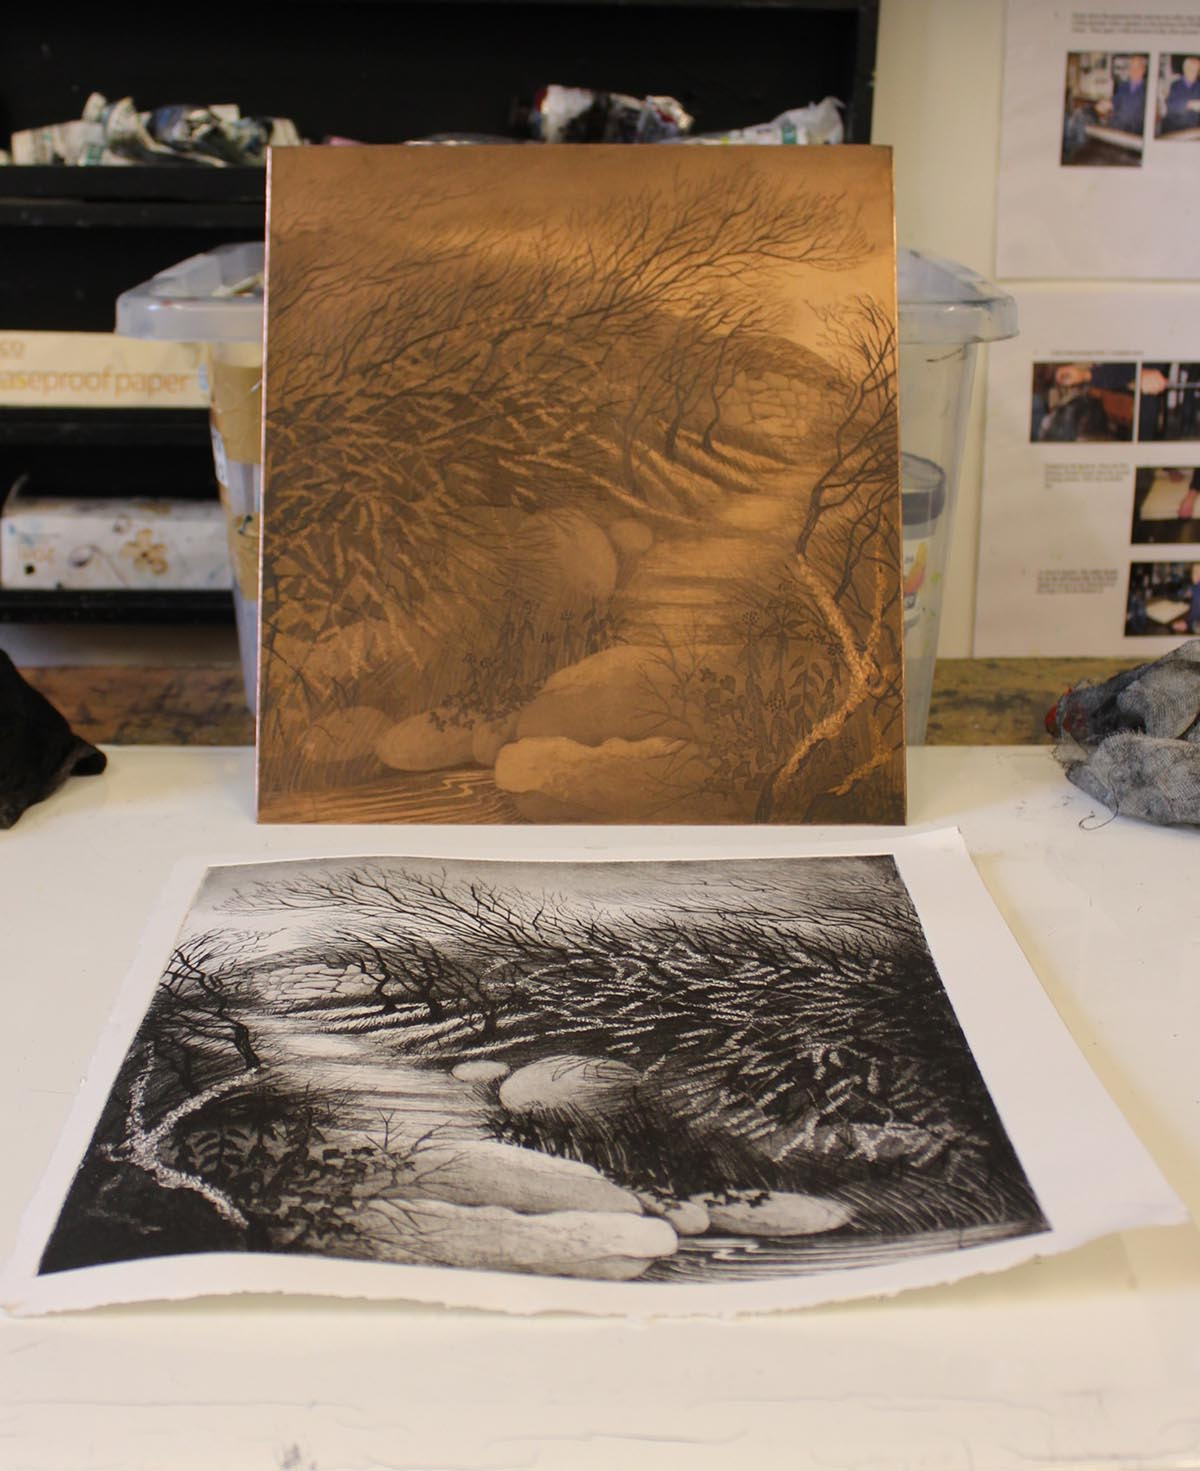 Copper plate etching and printed work by Morna Rhys